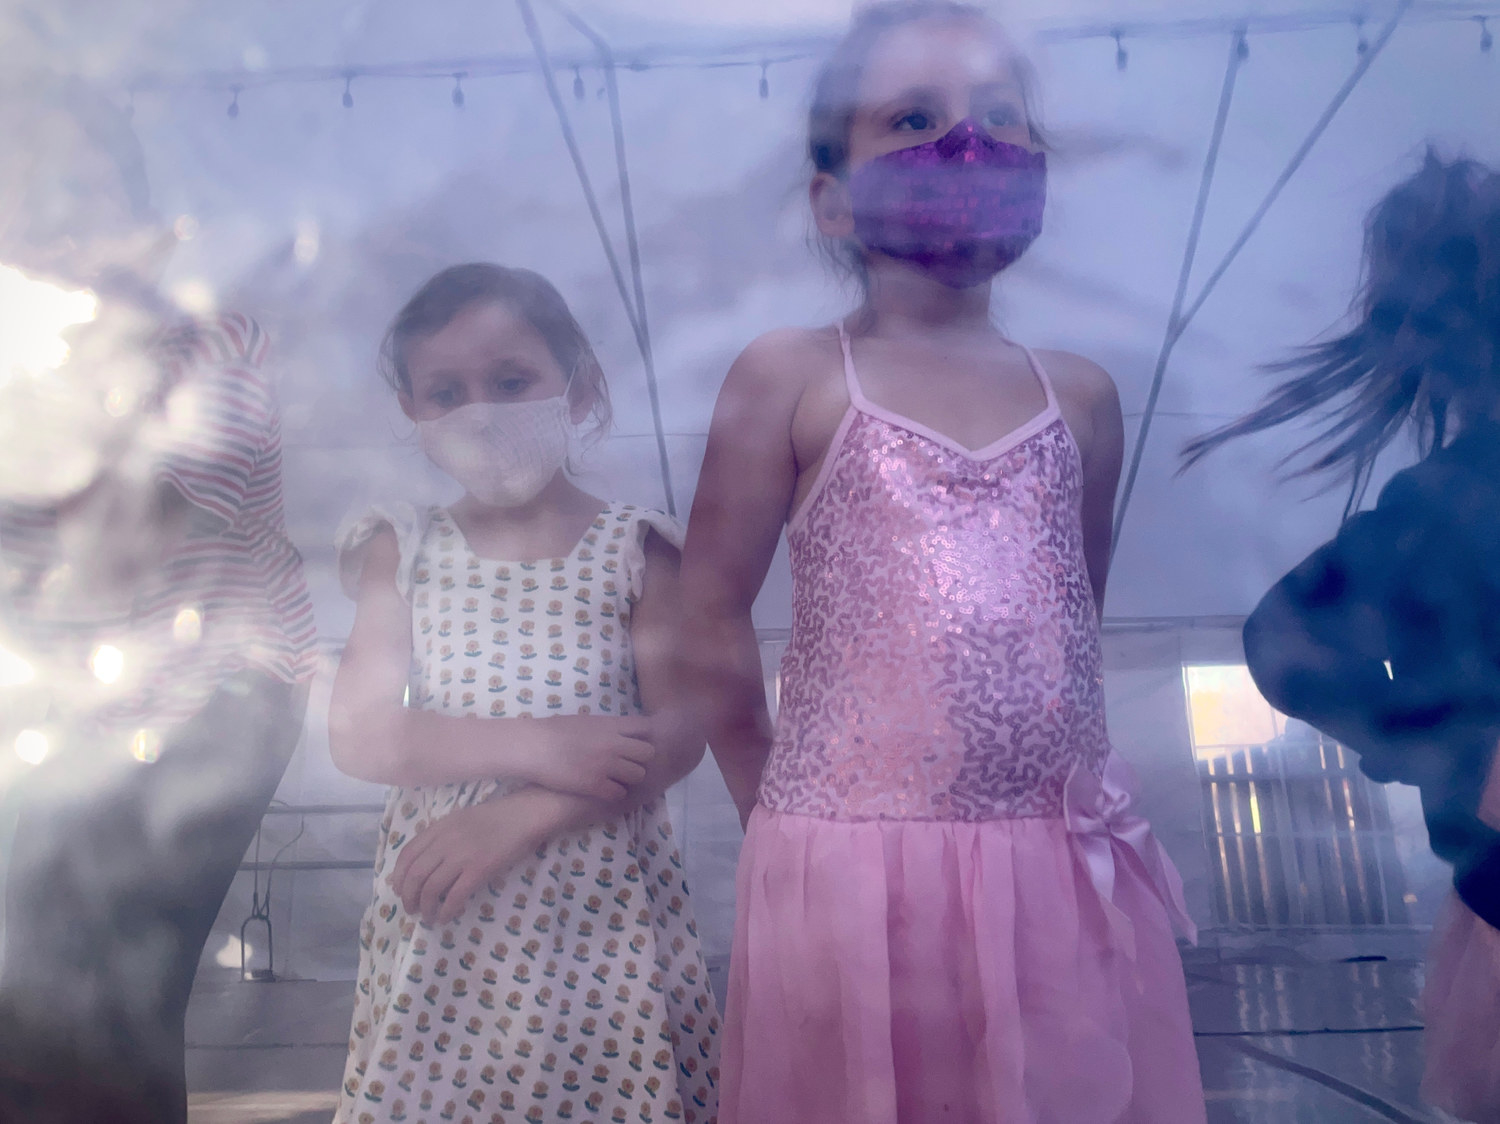 Two girls in dance gear and face masks look out from the inside of a tent